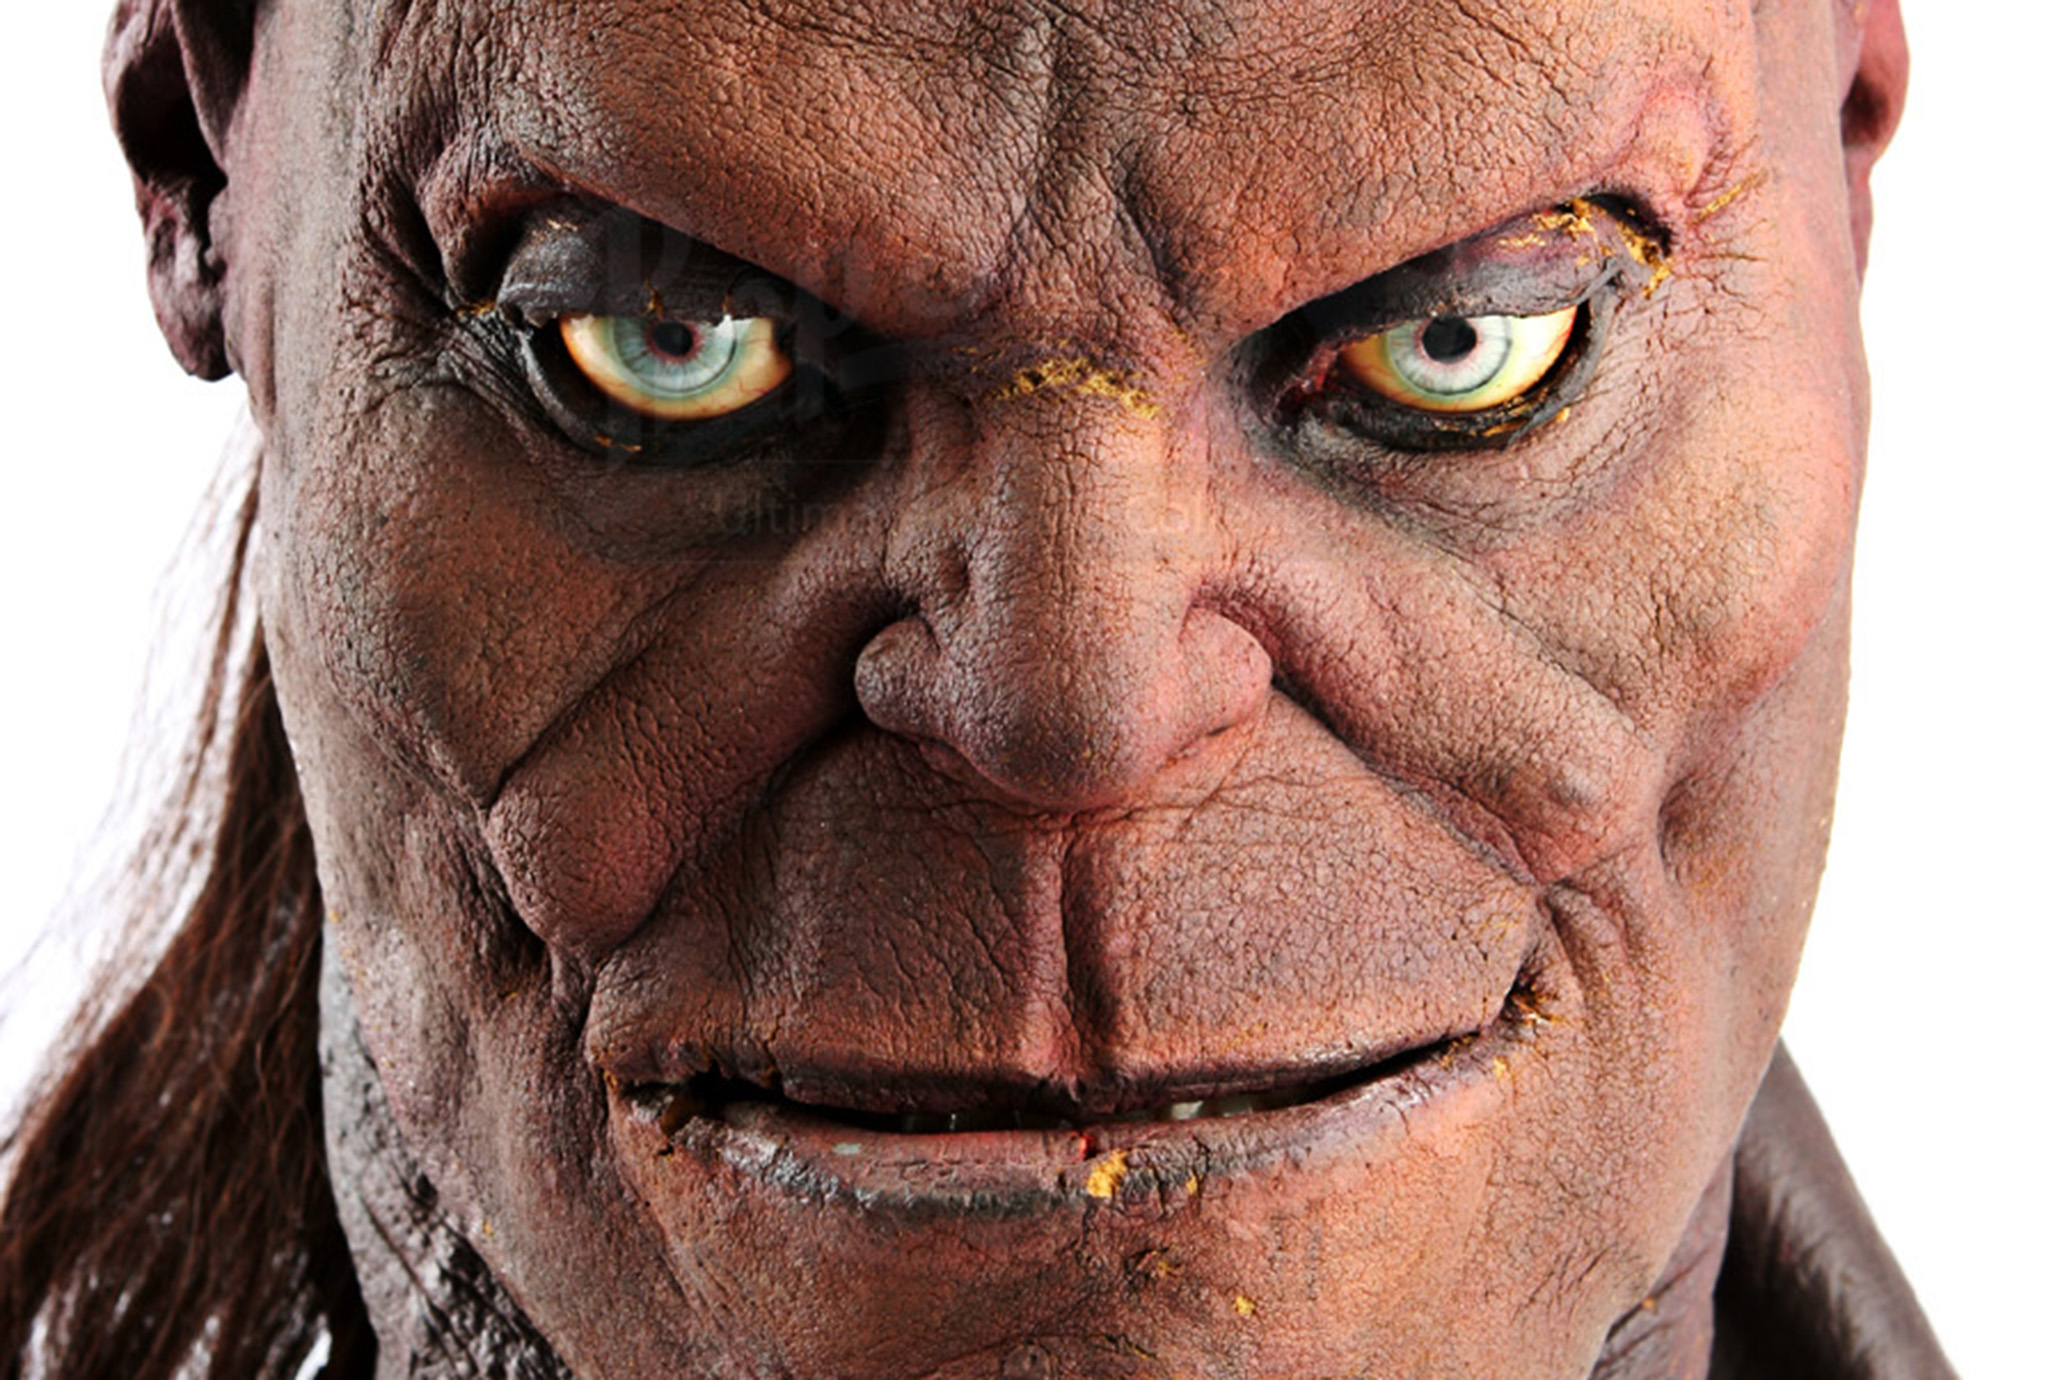 a close-up of a prop of the face of Goro from Mortal Kombat